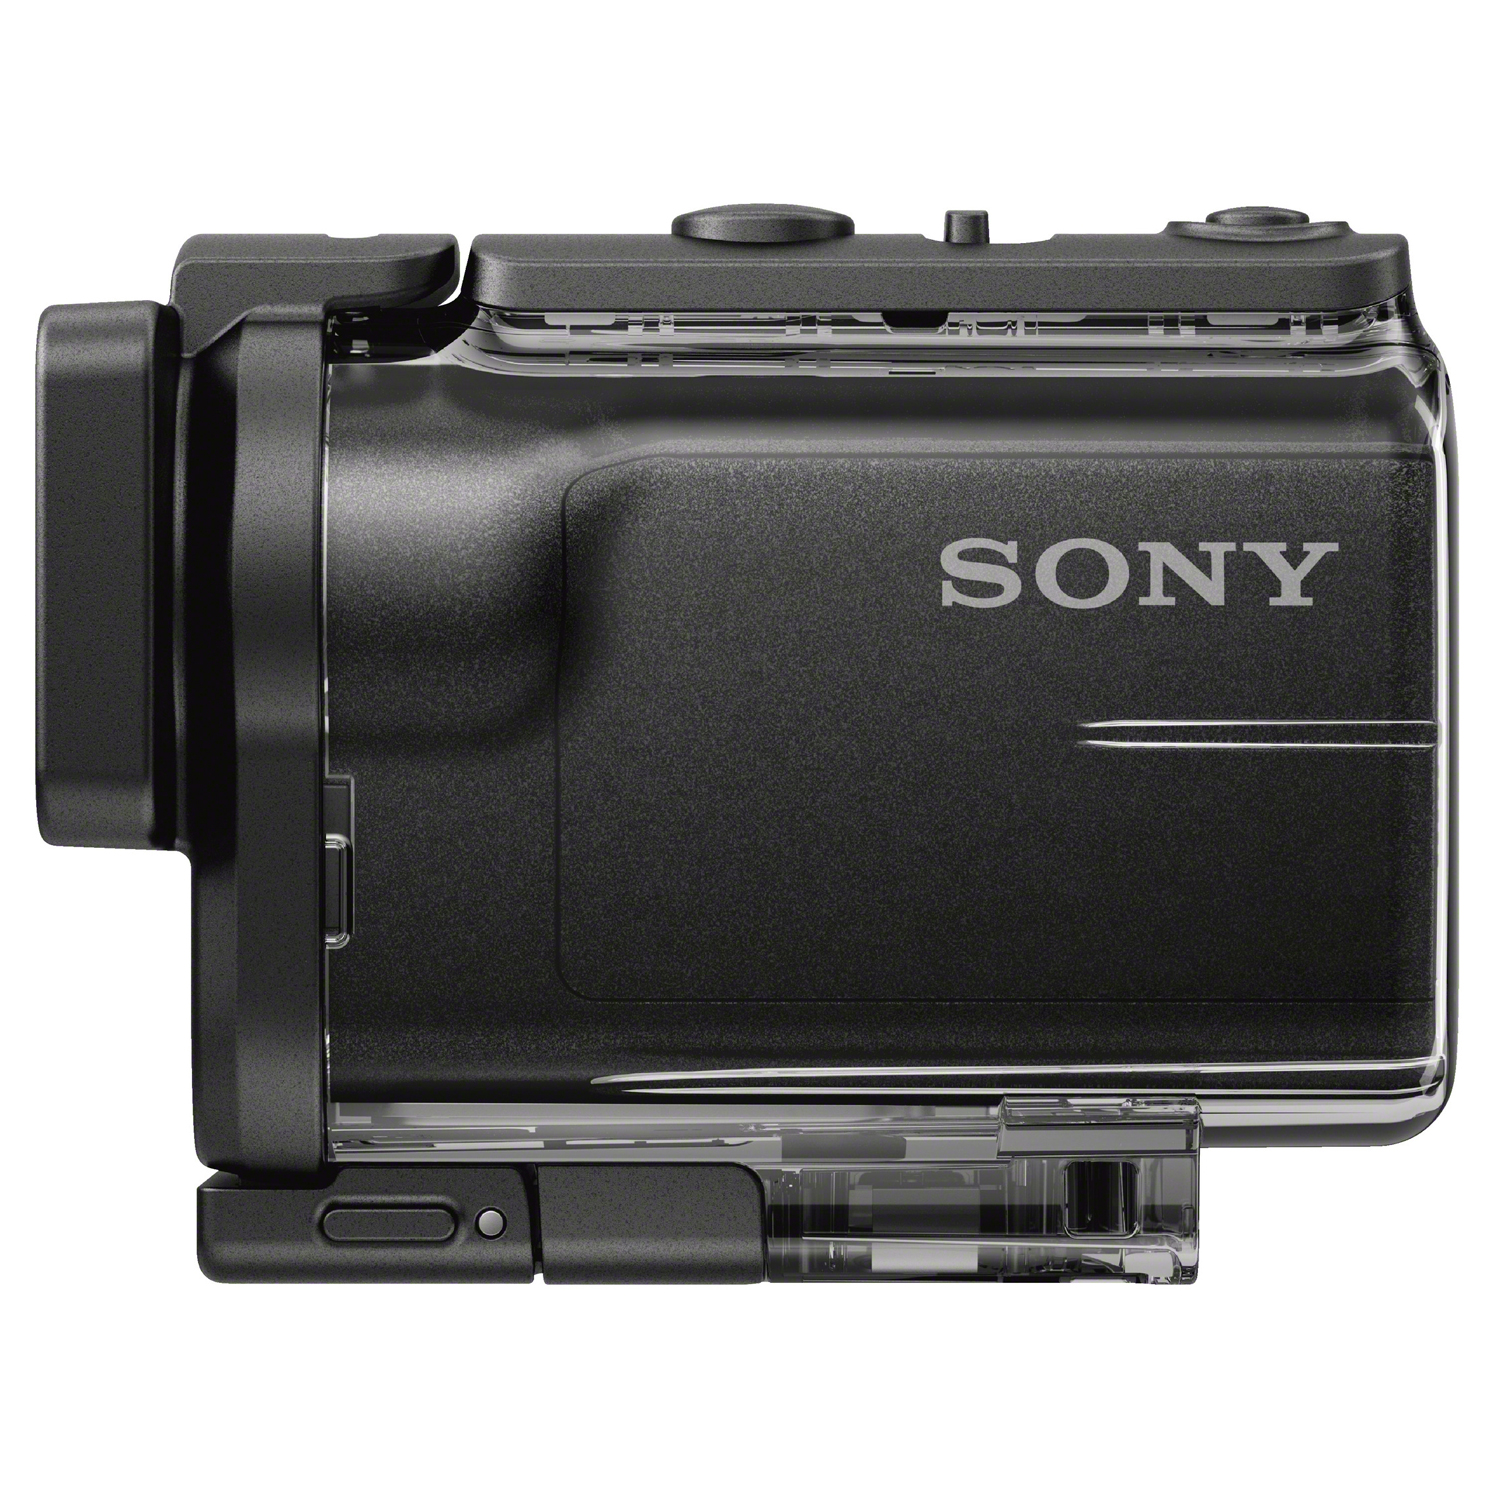 HDR-AS50 Full HD POV Action Camcorder